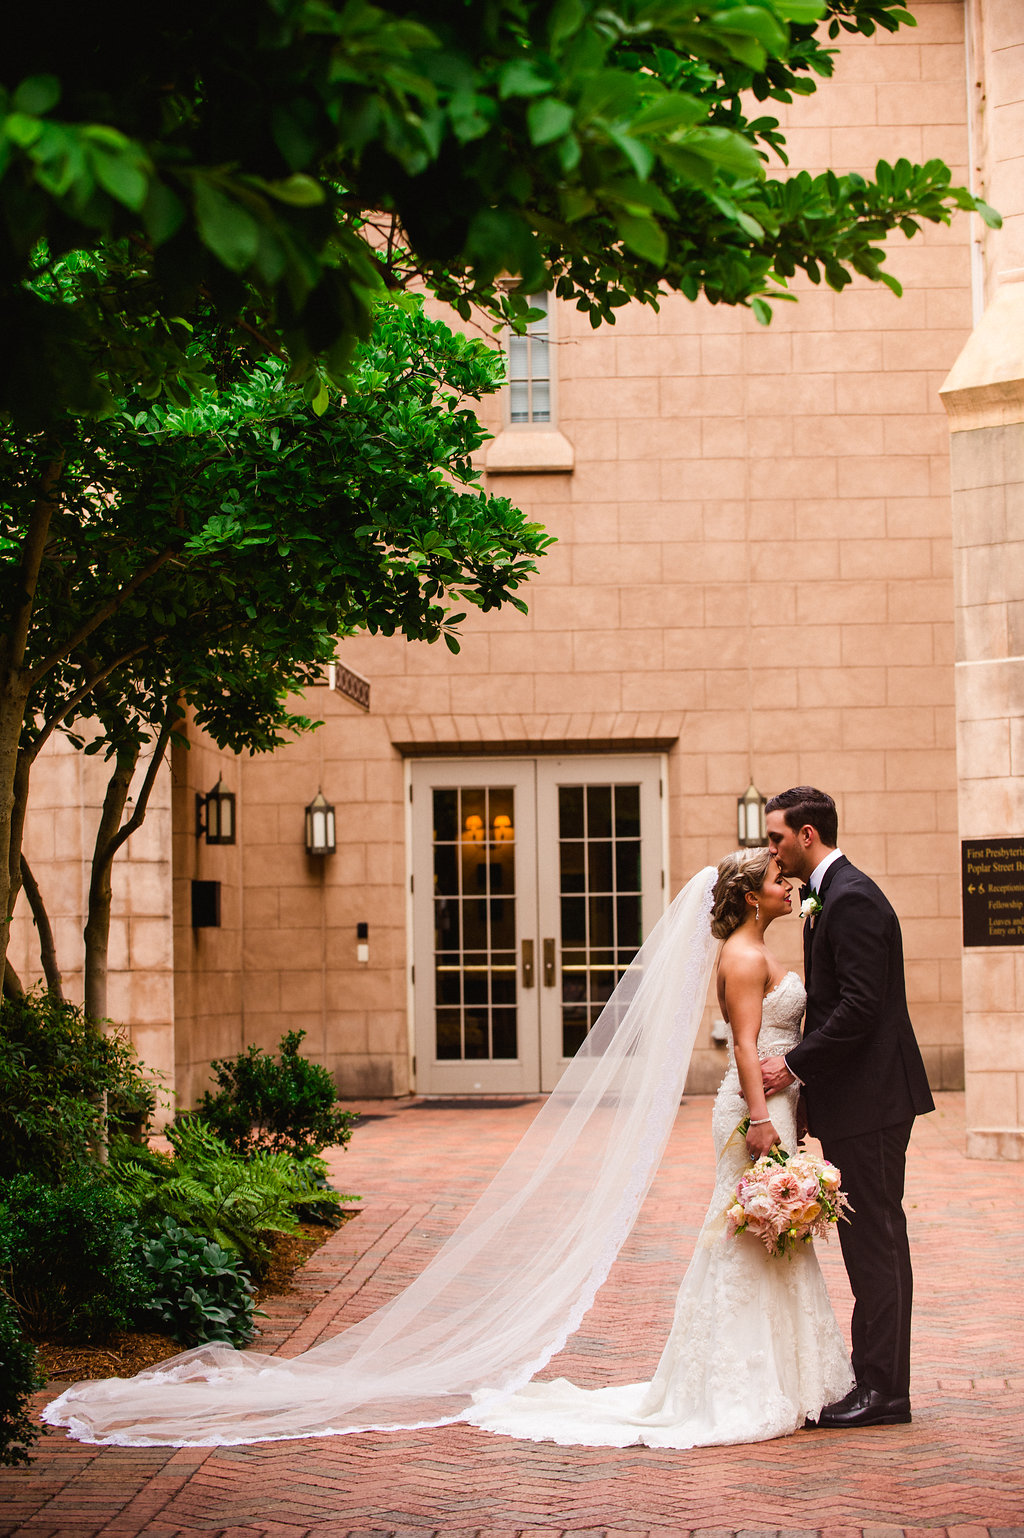 Bride and groom embrace after their wedding ceremony at First Presbyterian